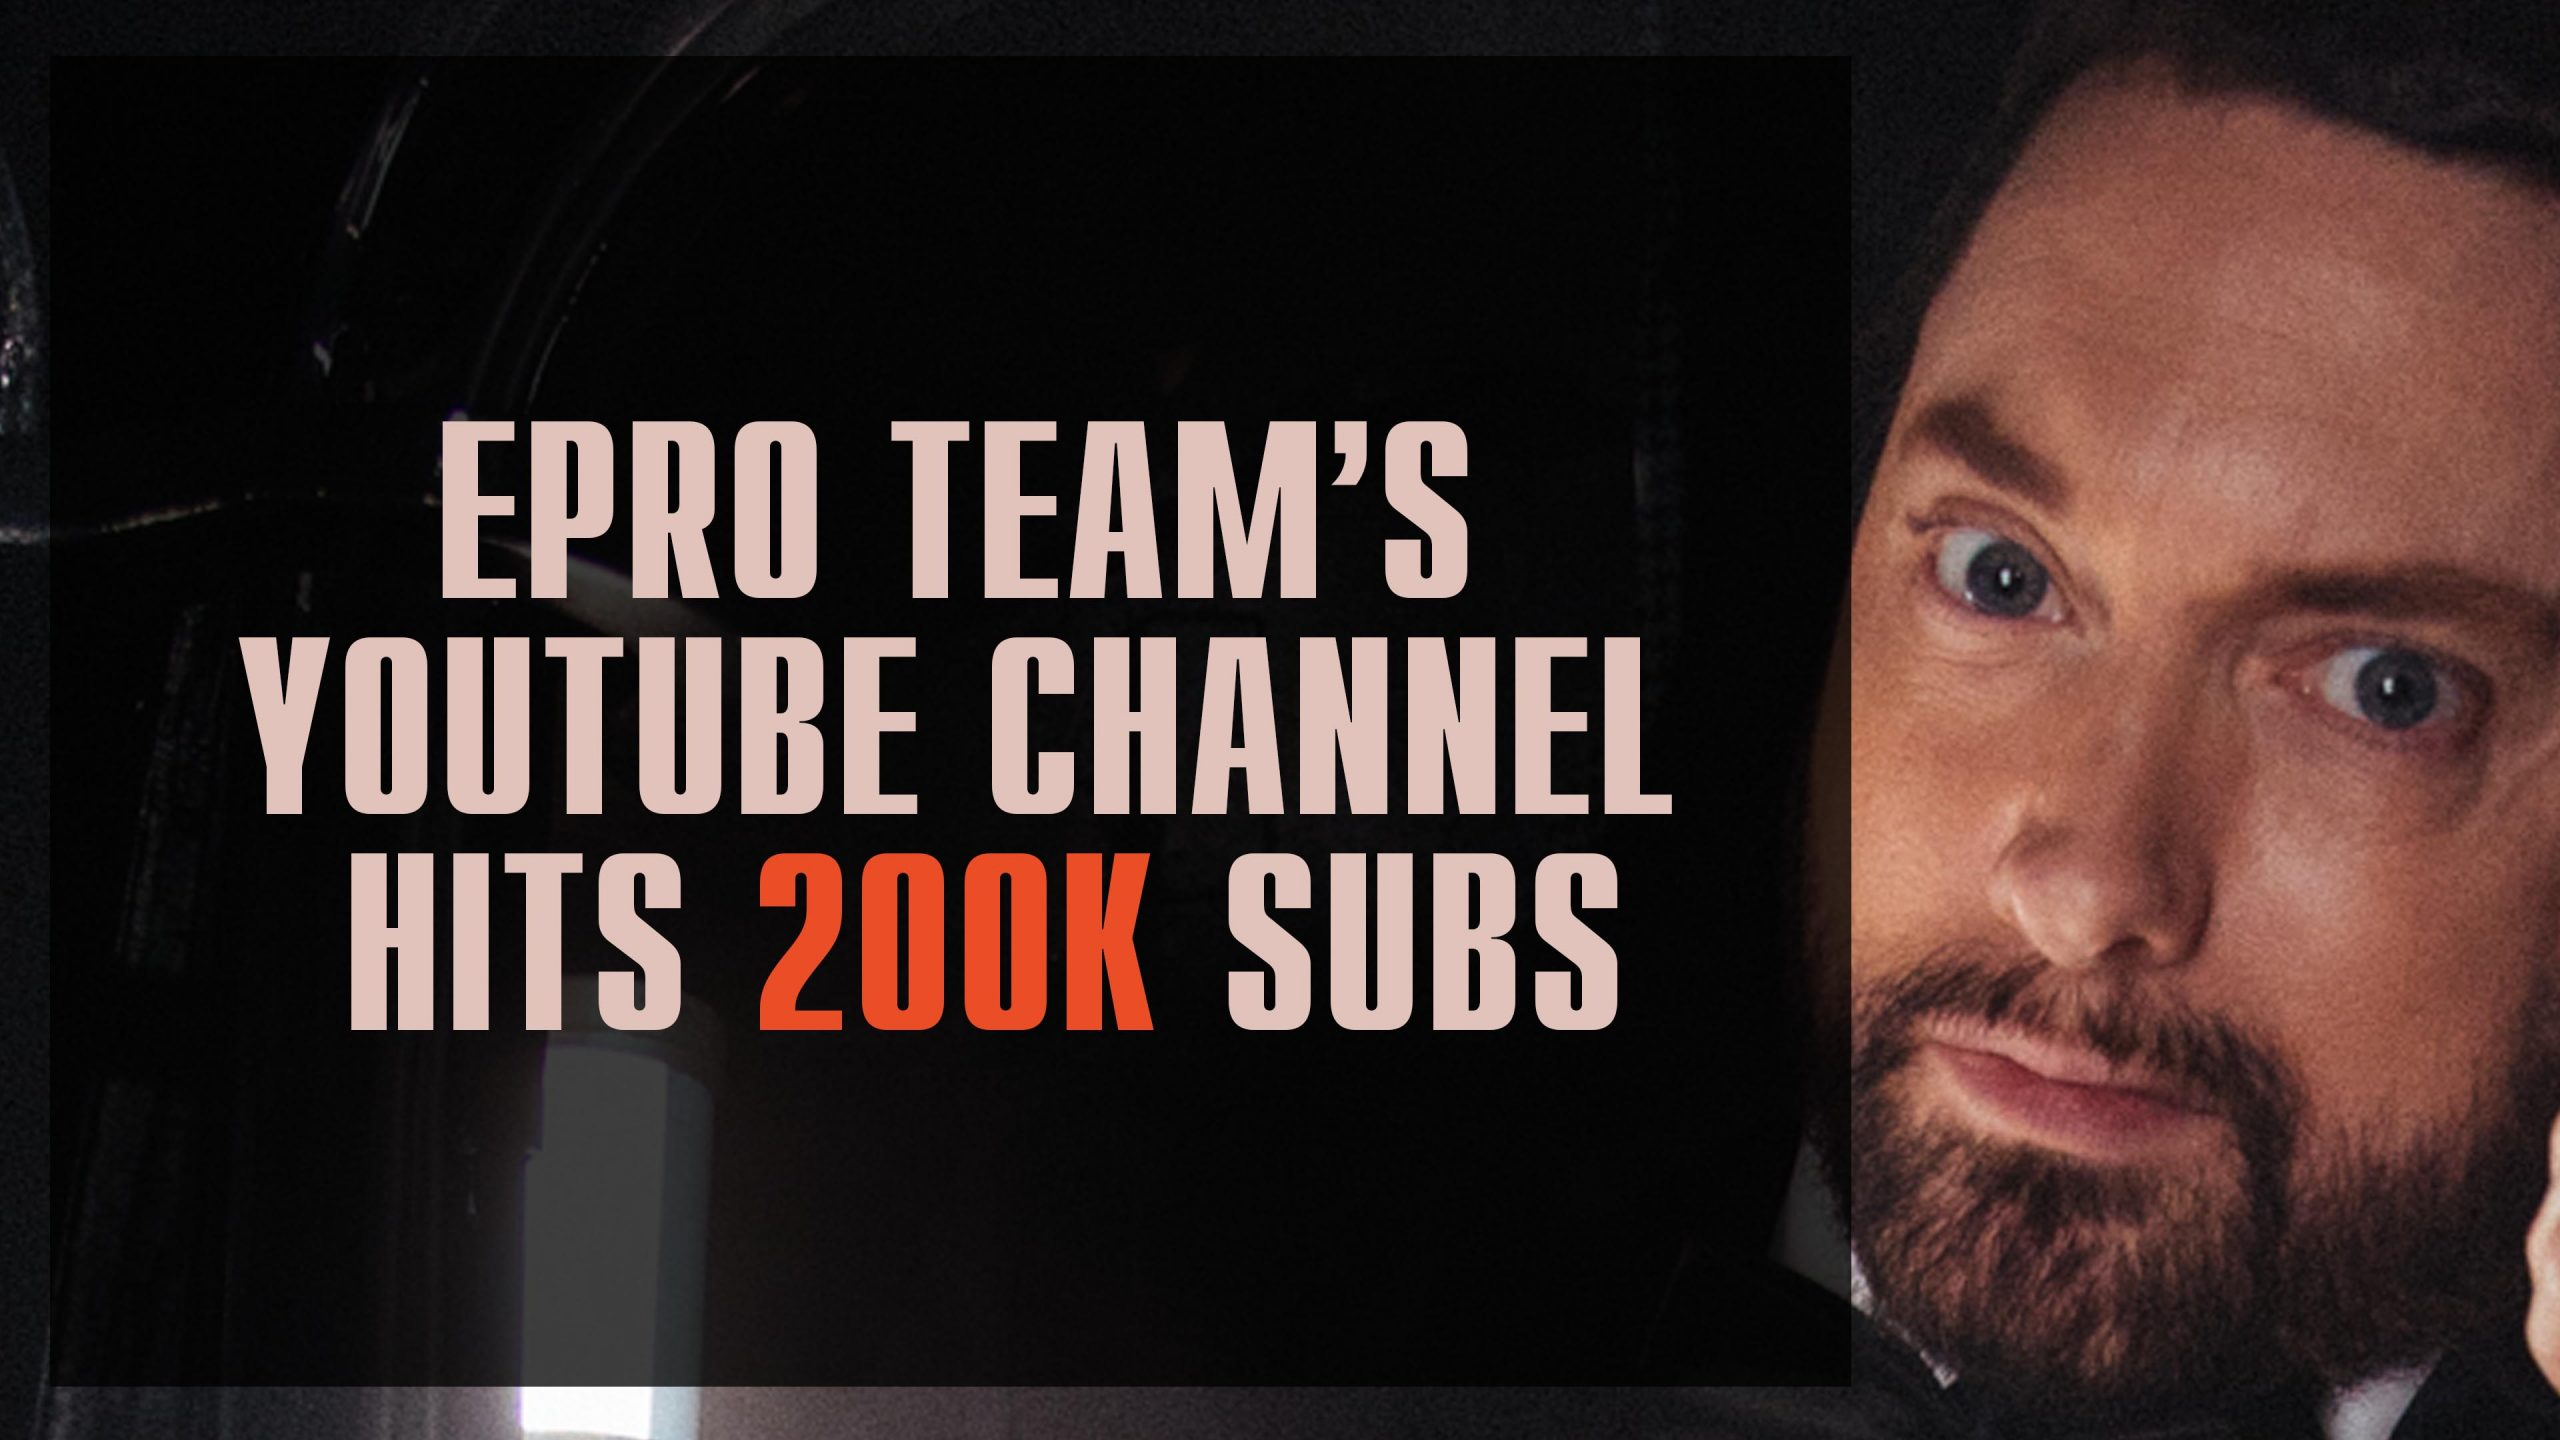 ePro Team's YouTube Channel Hits 200K Subs